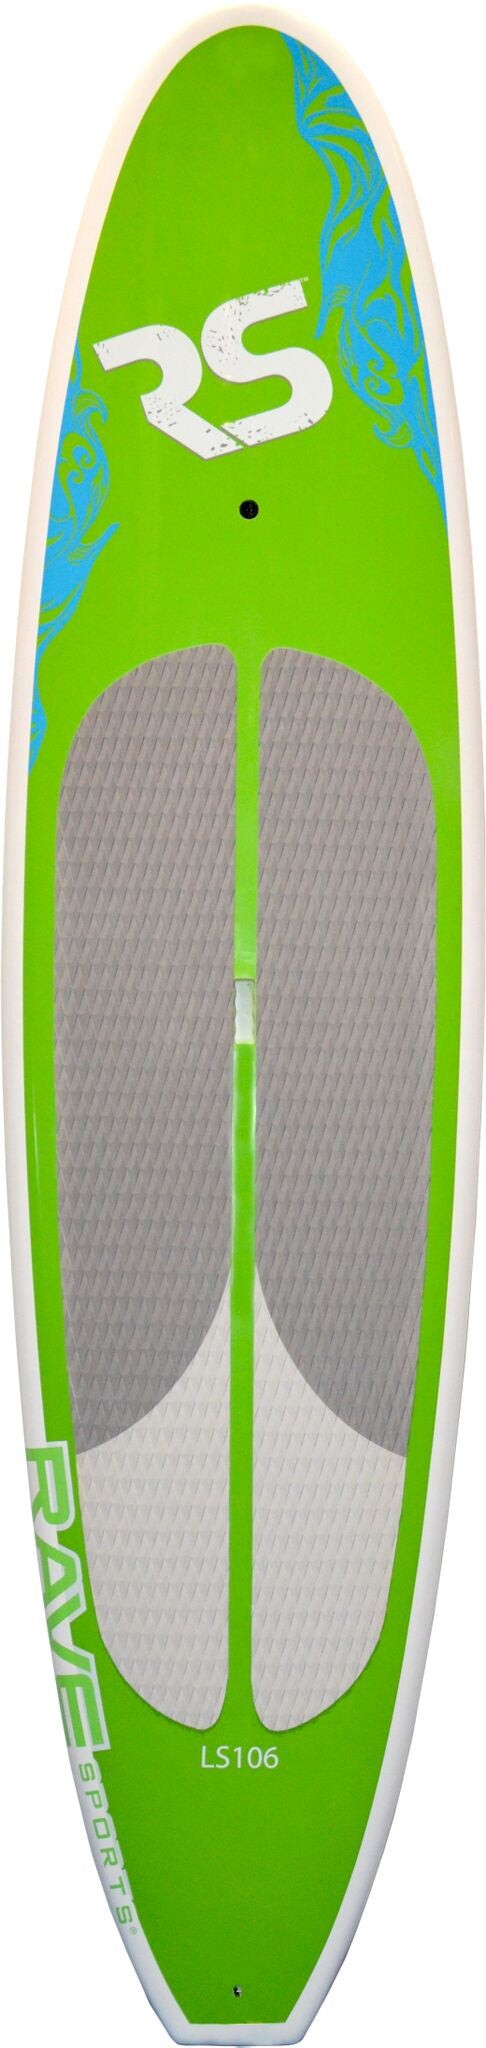 "Lake Cruiser LS106 SUP 10'6"" Green"